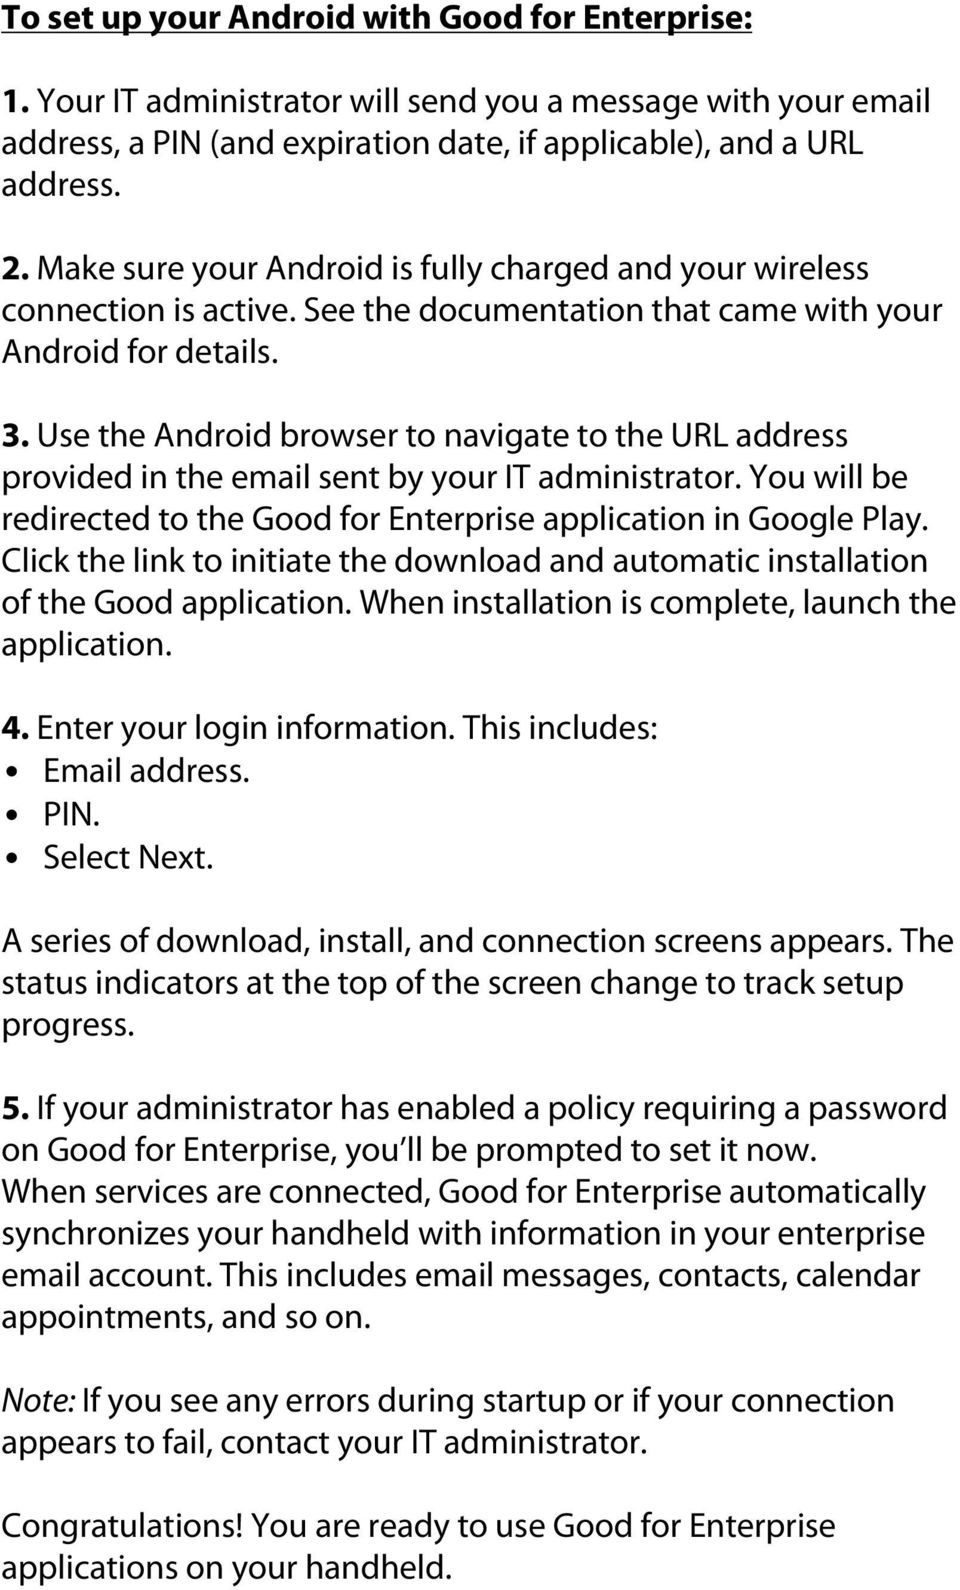 Use the Android browser to navigate to the URL address provided in the email sent by your IT administrator. You will be redirected to the Good for Enterprise application in Google Play.